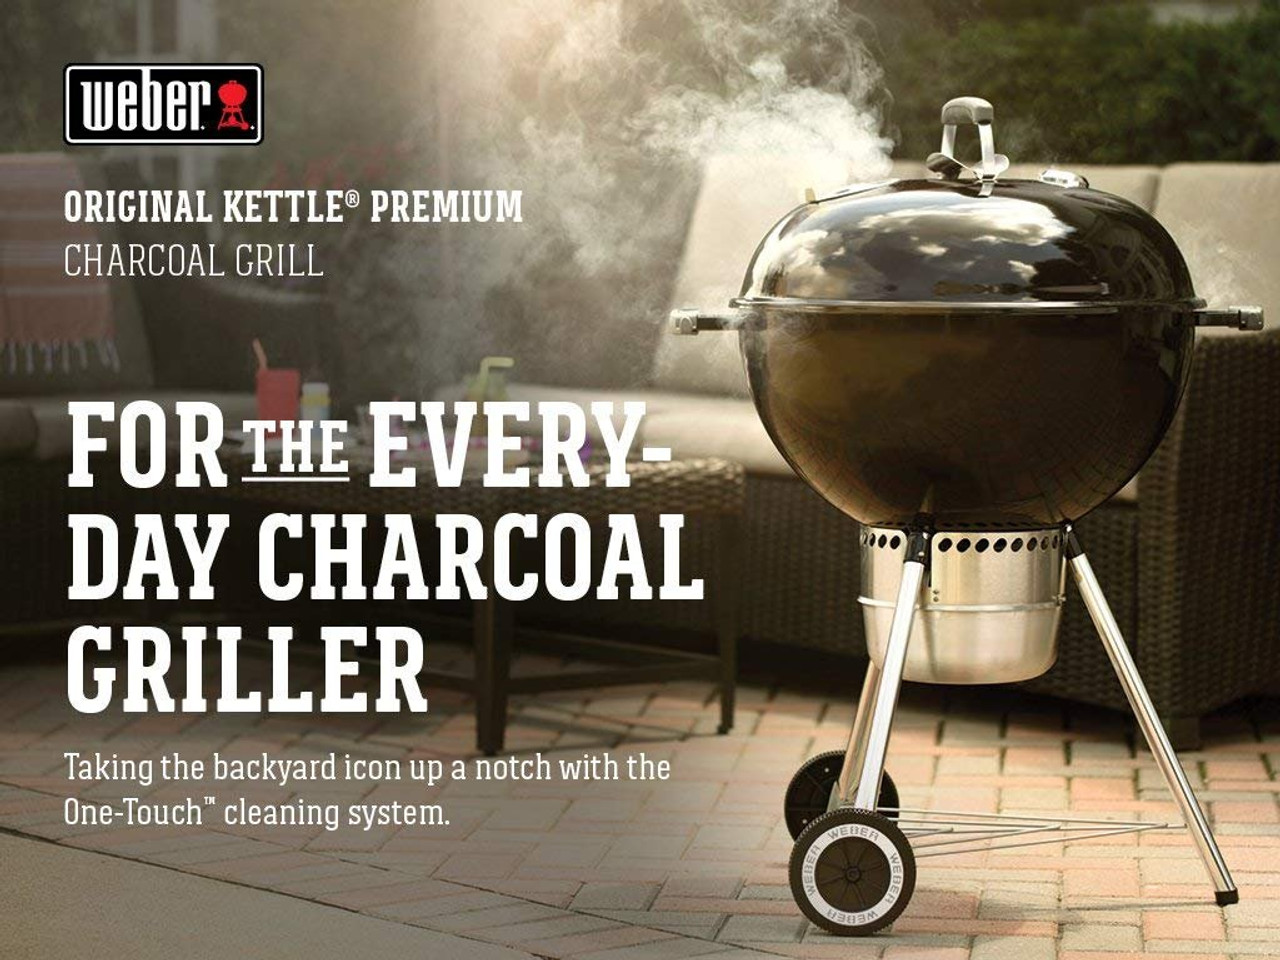 Weber Grill One Touch Weber 14401001 Original Kettle Premium Charcoal Grill 22 Inch Black